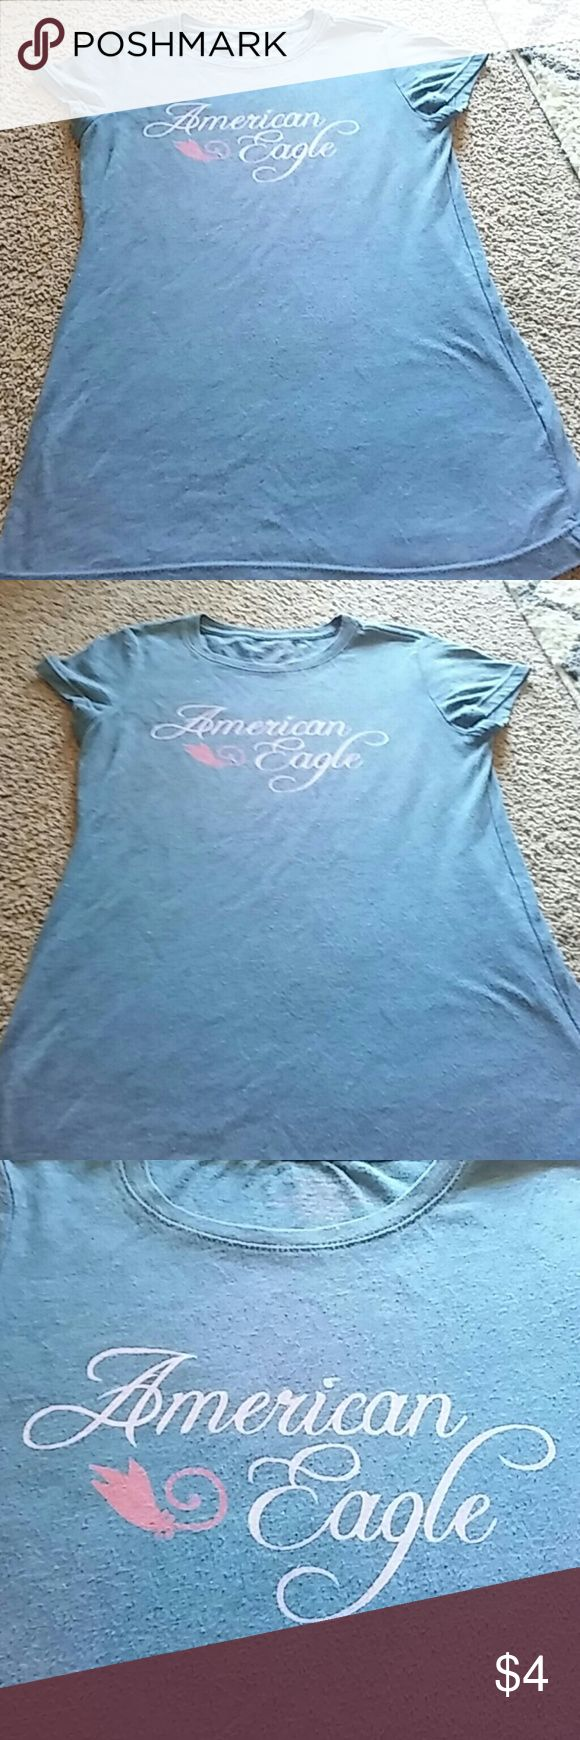 American eagle womens tshirt in used condition Price reflects wear American Eagle Outfitters Tops Tees - Short Sleeve